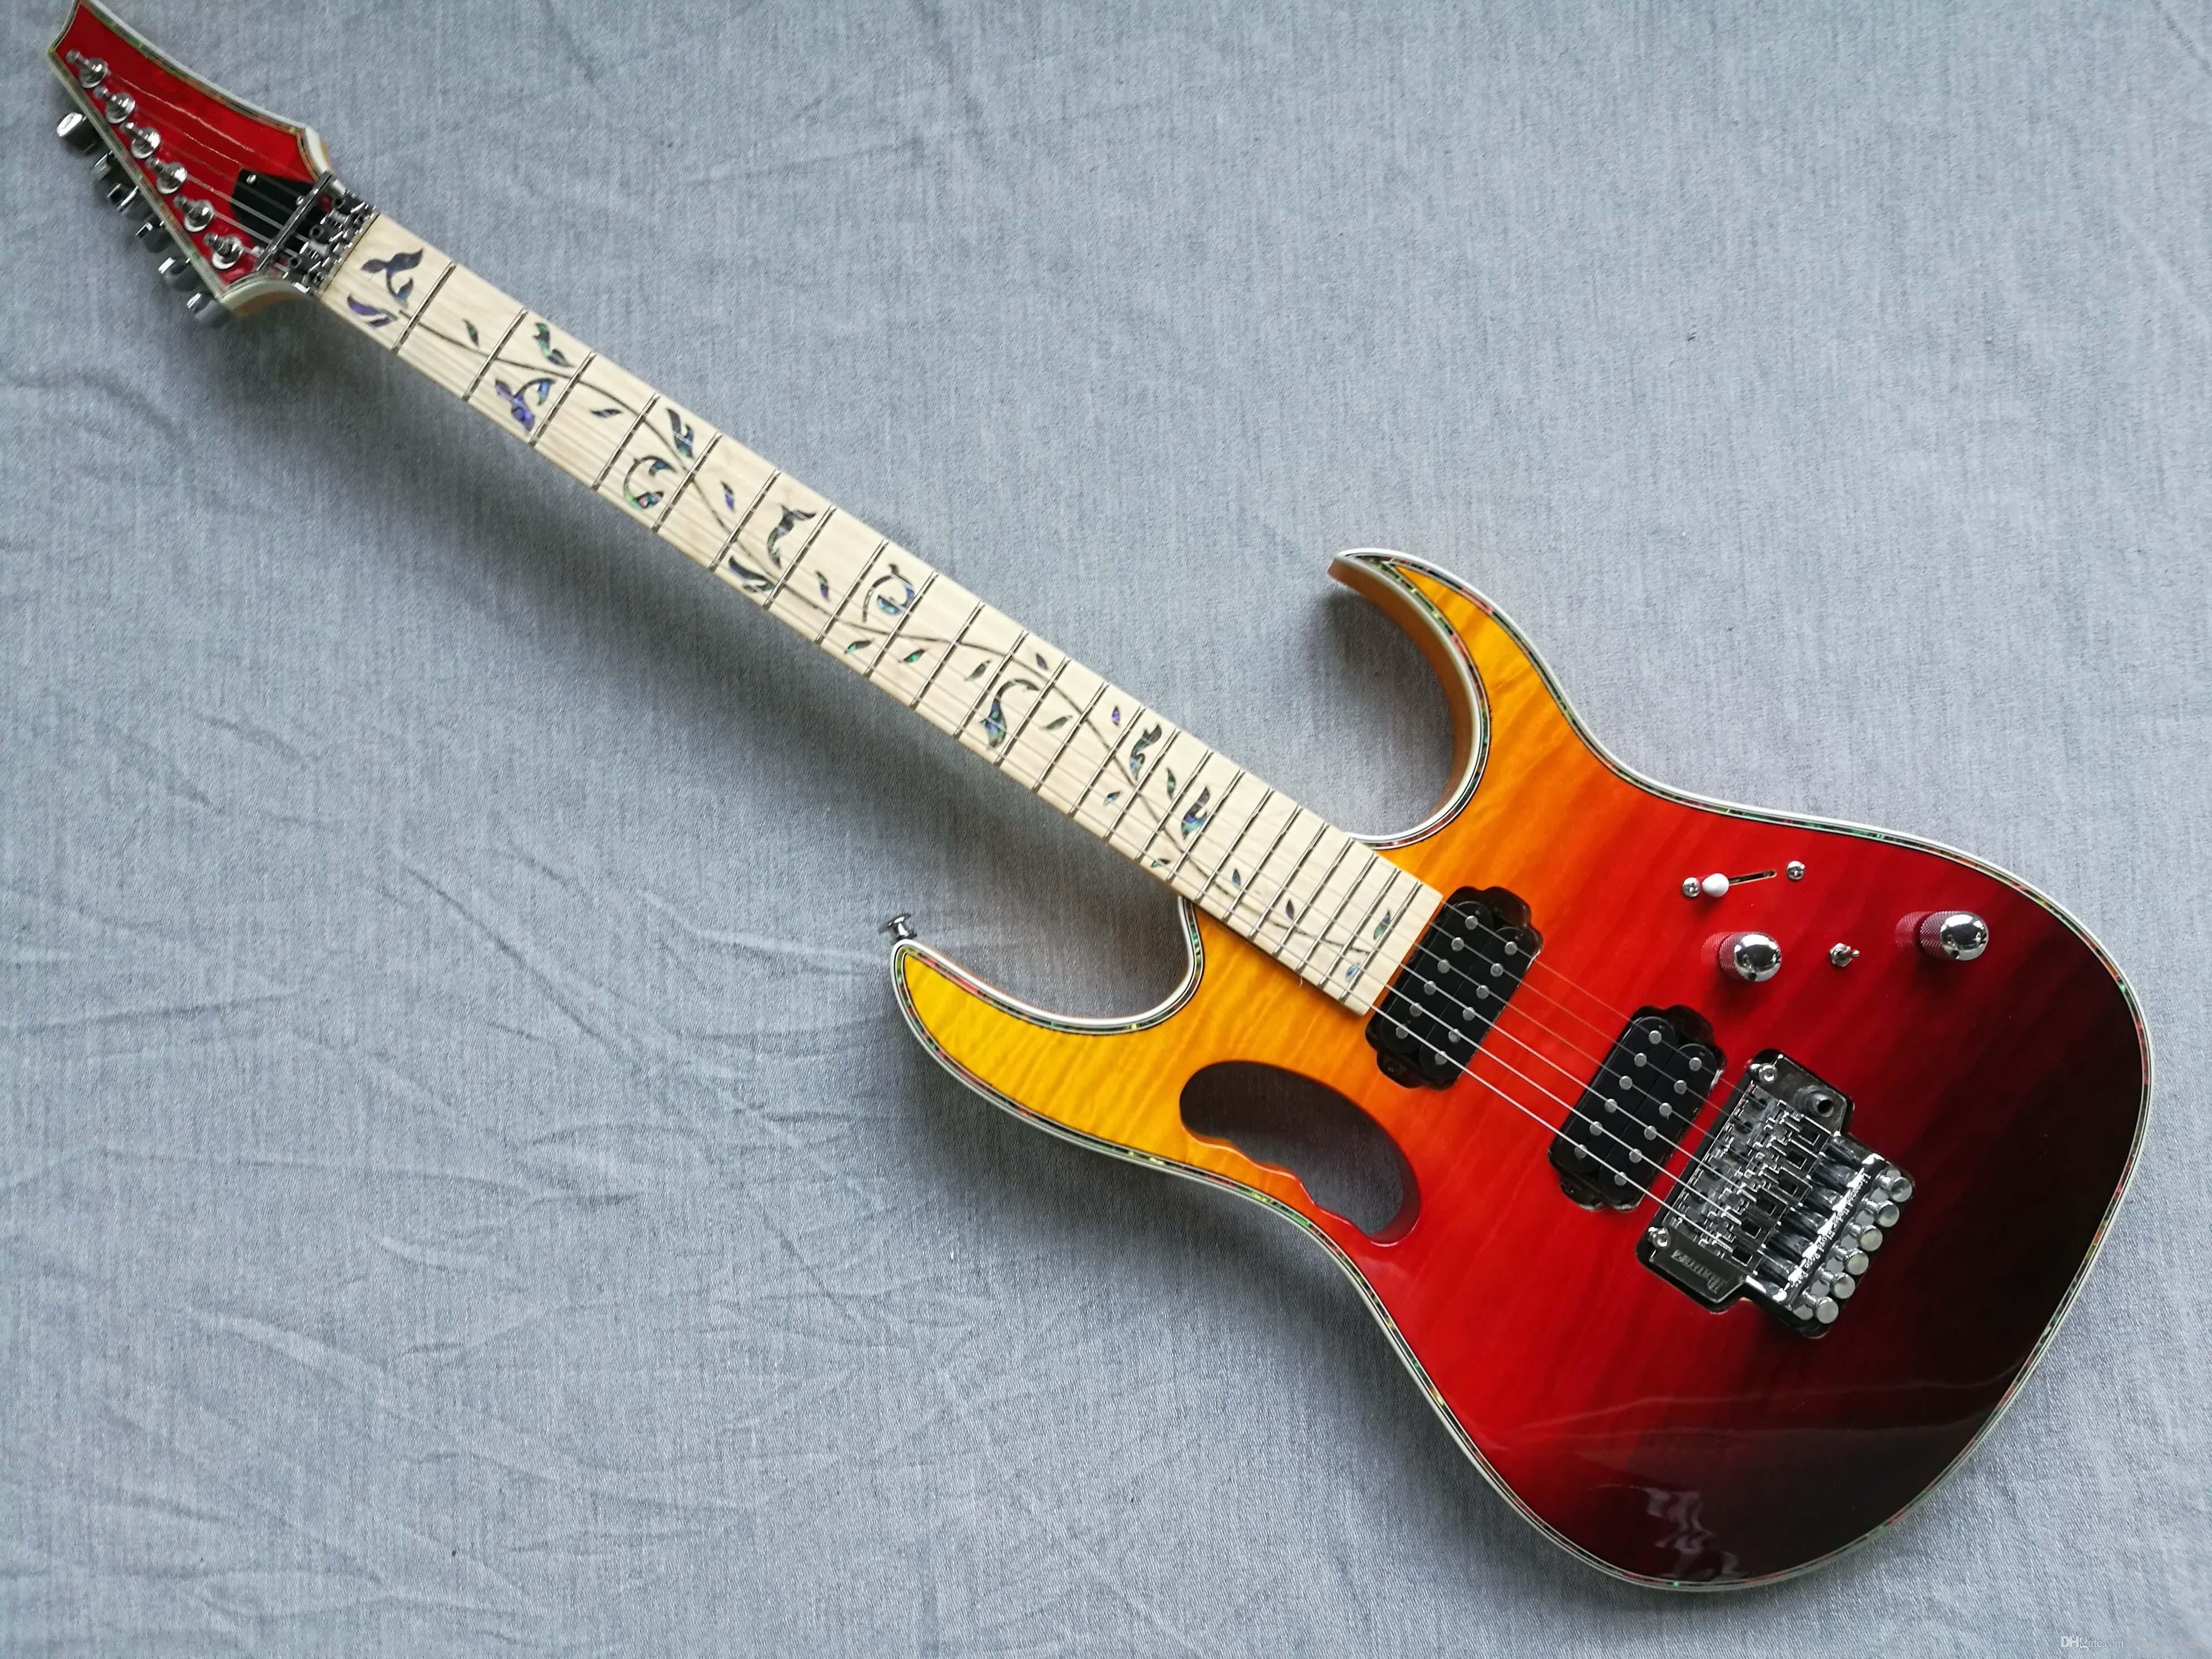 What's The Average Electic Guitar Weight? (7 Examples)